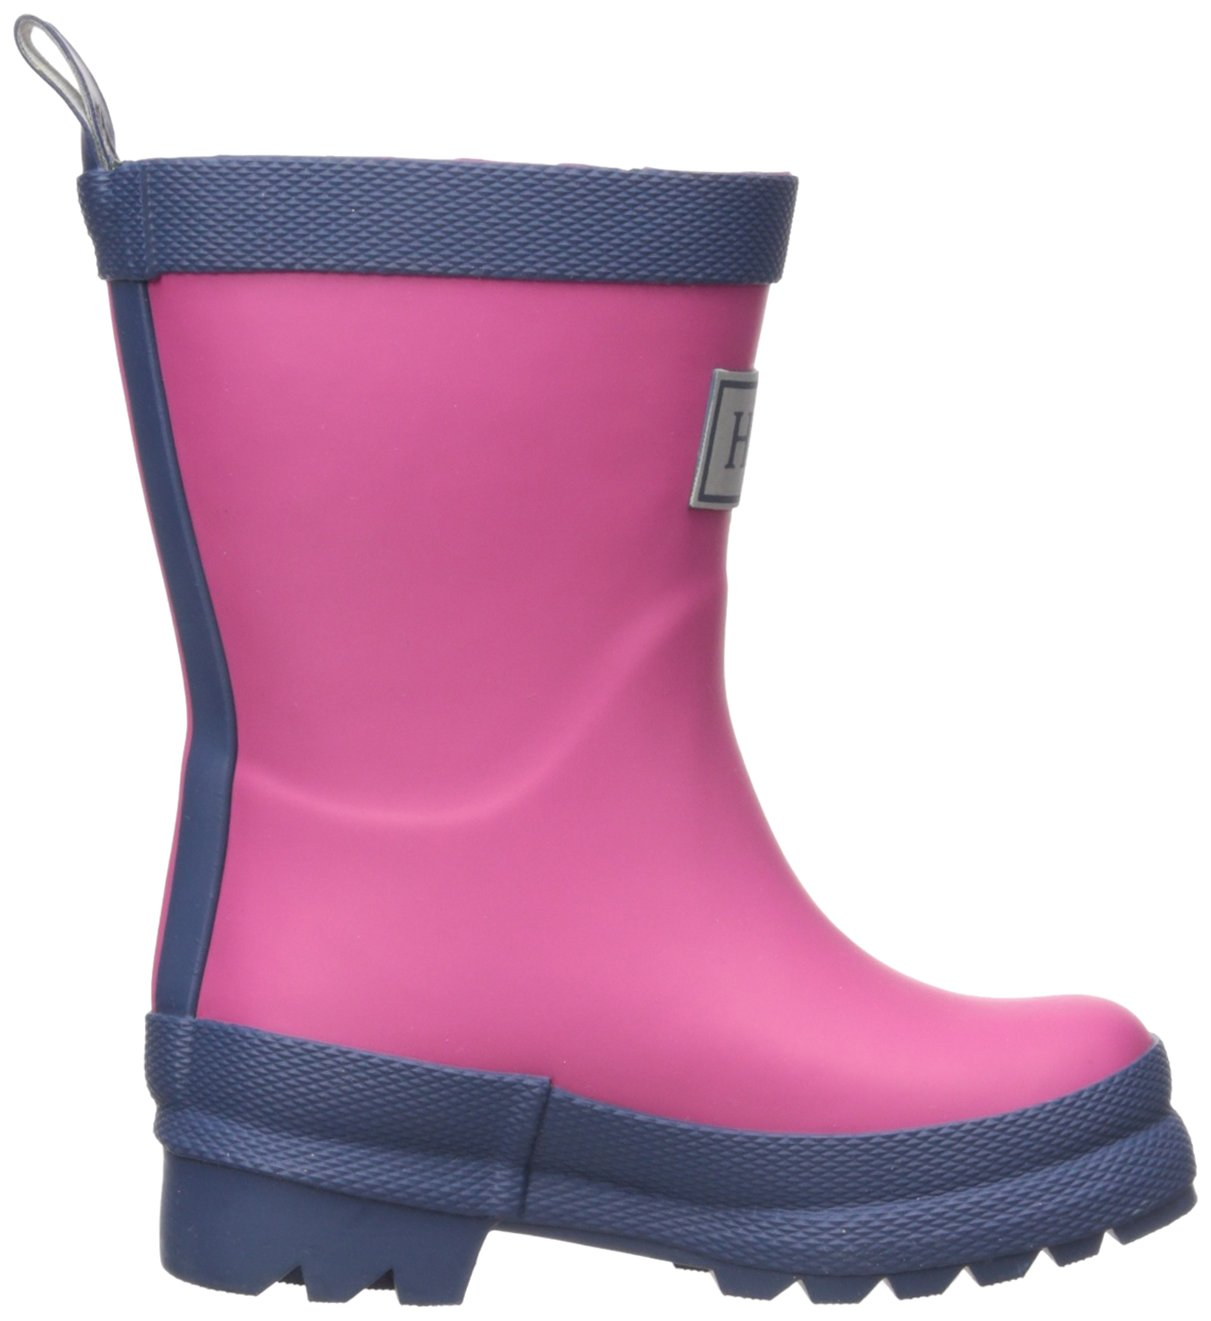 Hatley Kids' Classic Boots Girls Rain Accessory, Fuchsia Navy, 7 M US Toddler by Hatley (Image #10)